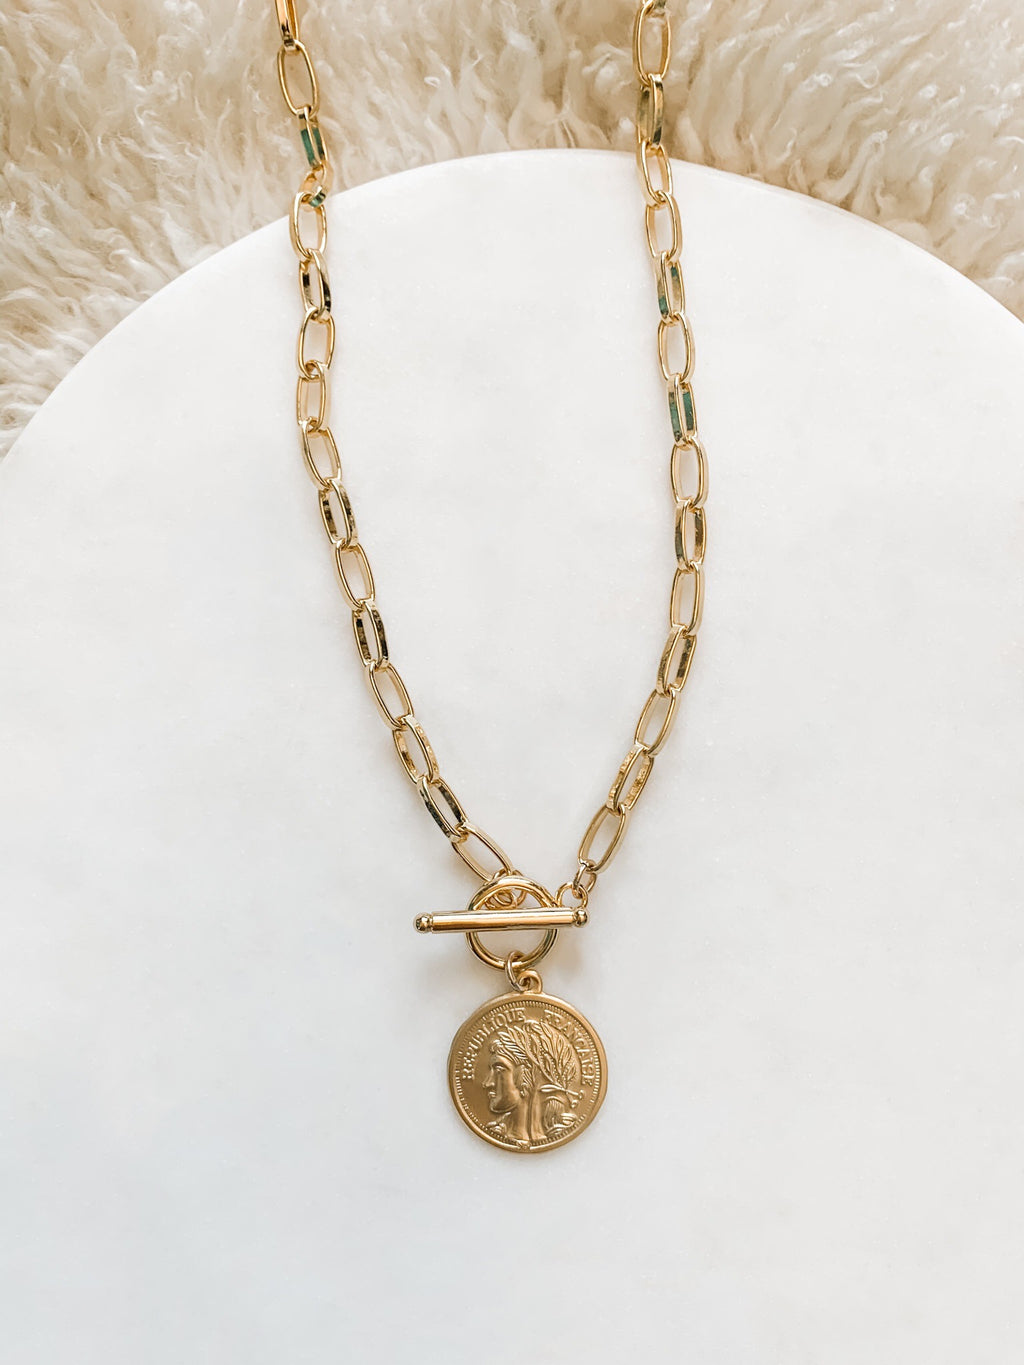 Gold Filled French Coin Necklace - The Pretty Eclectic